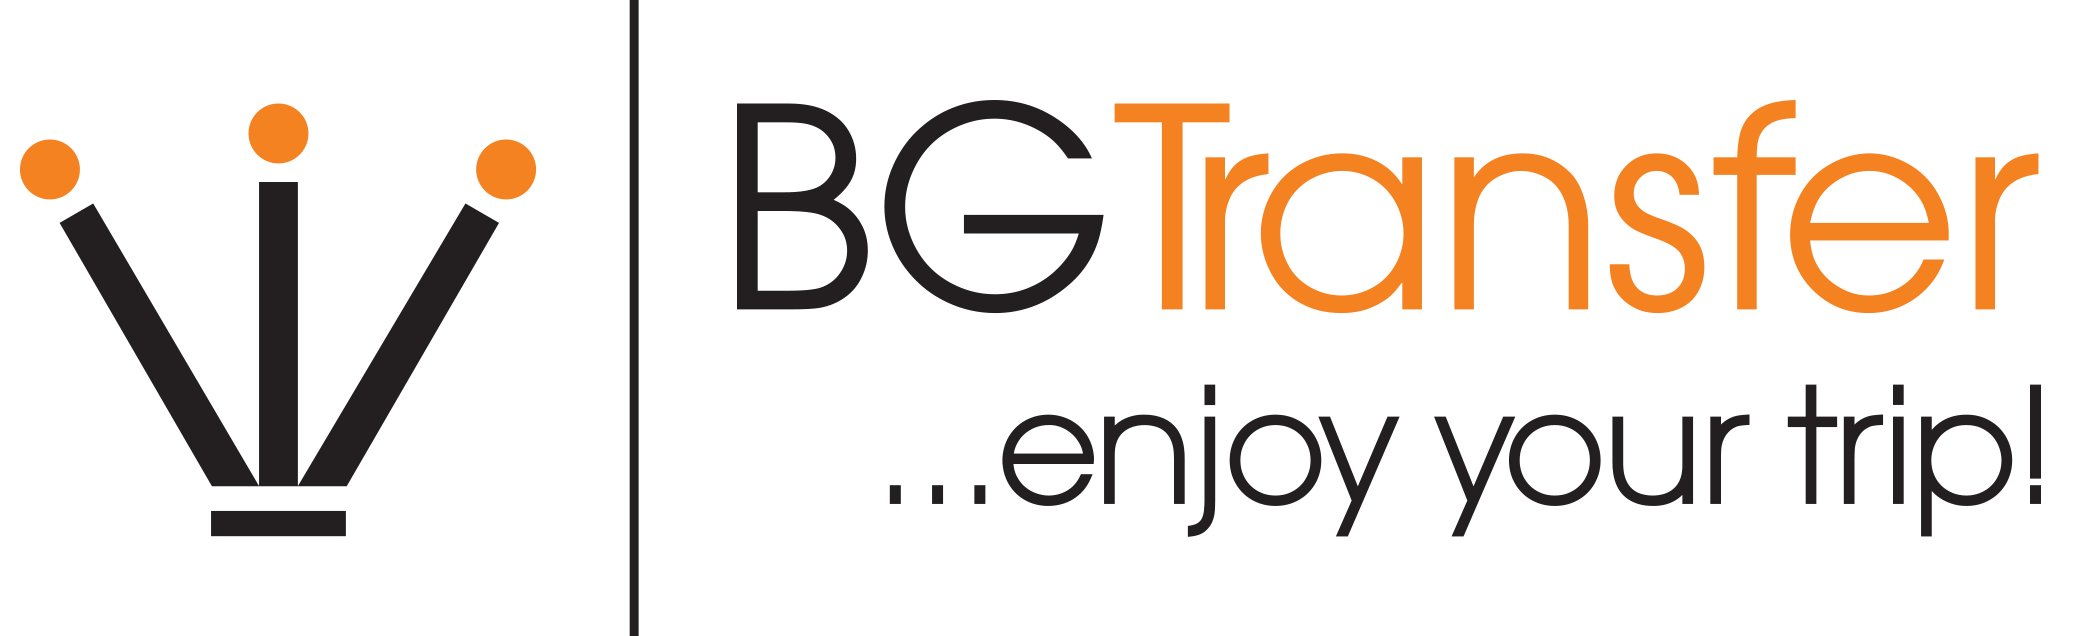 BGTransfer -  Bulgaria Airport Transfers